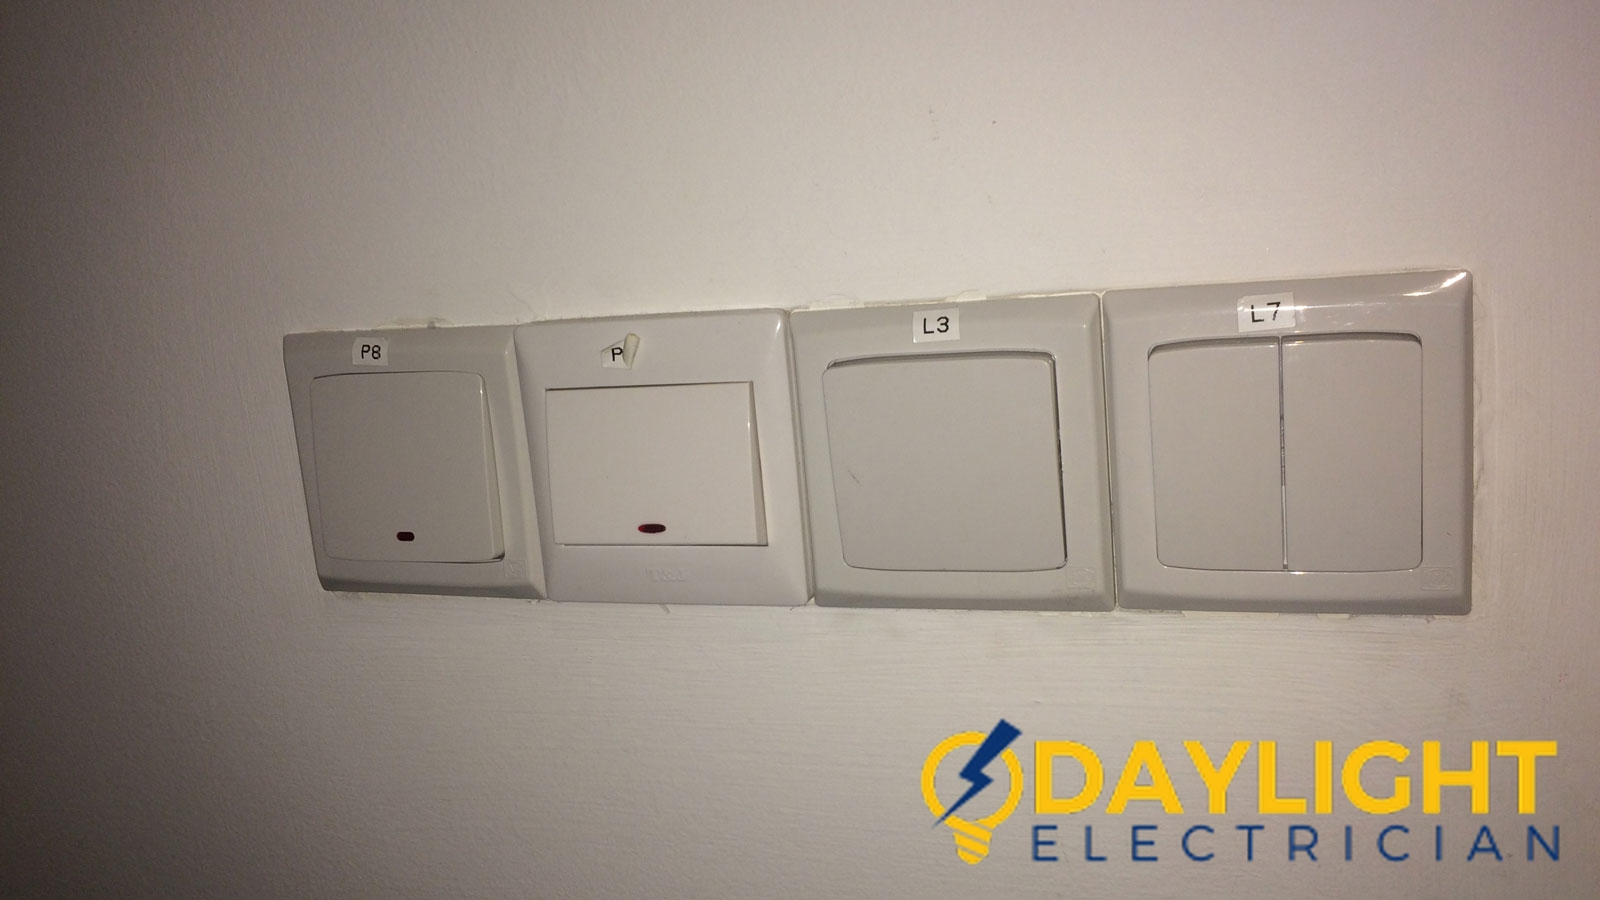 wall light switch installation daylight electrician singapore condo bukit timah 3 wm